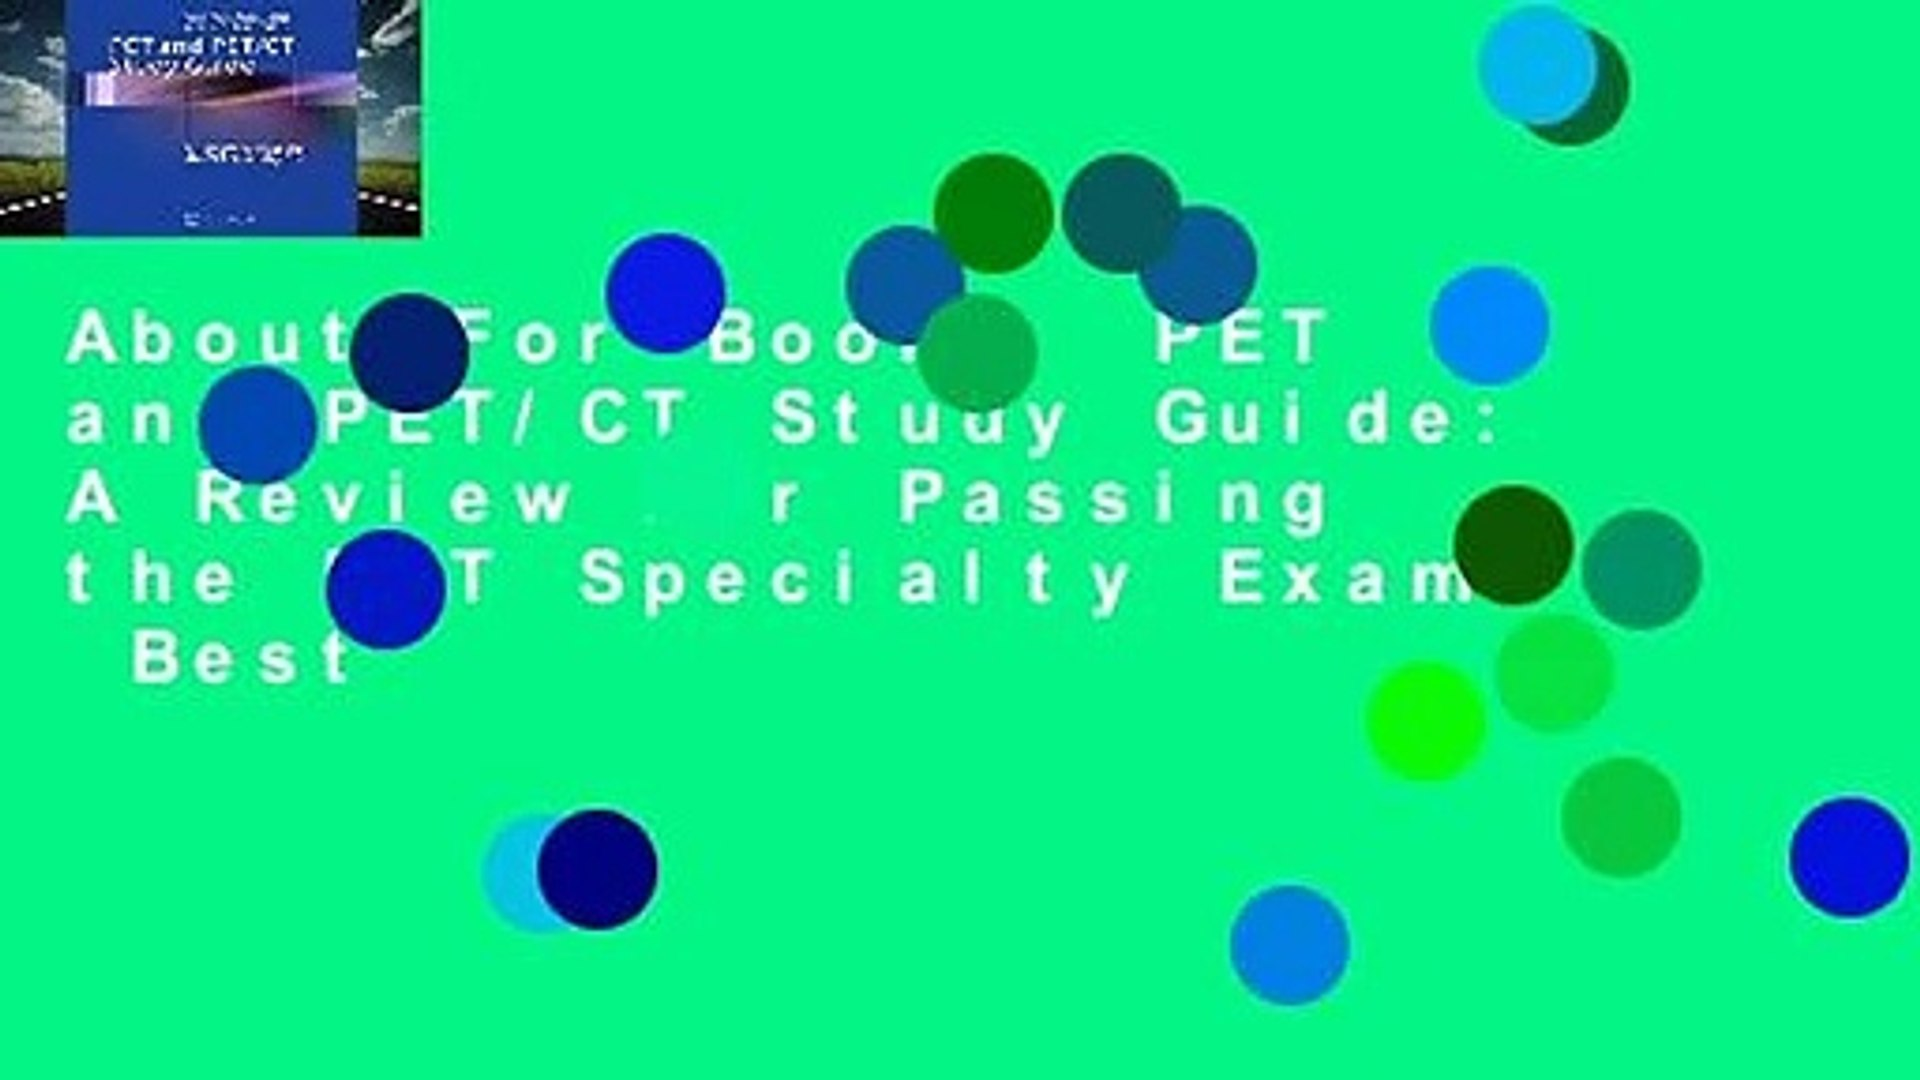 About For Books  PET and PET/CT Study Guide: A Review for Passing the PET Specialty Exam  Best